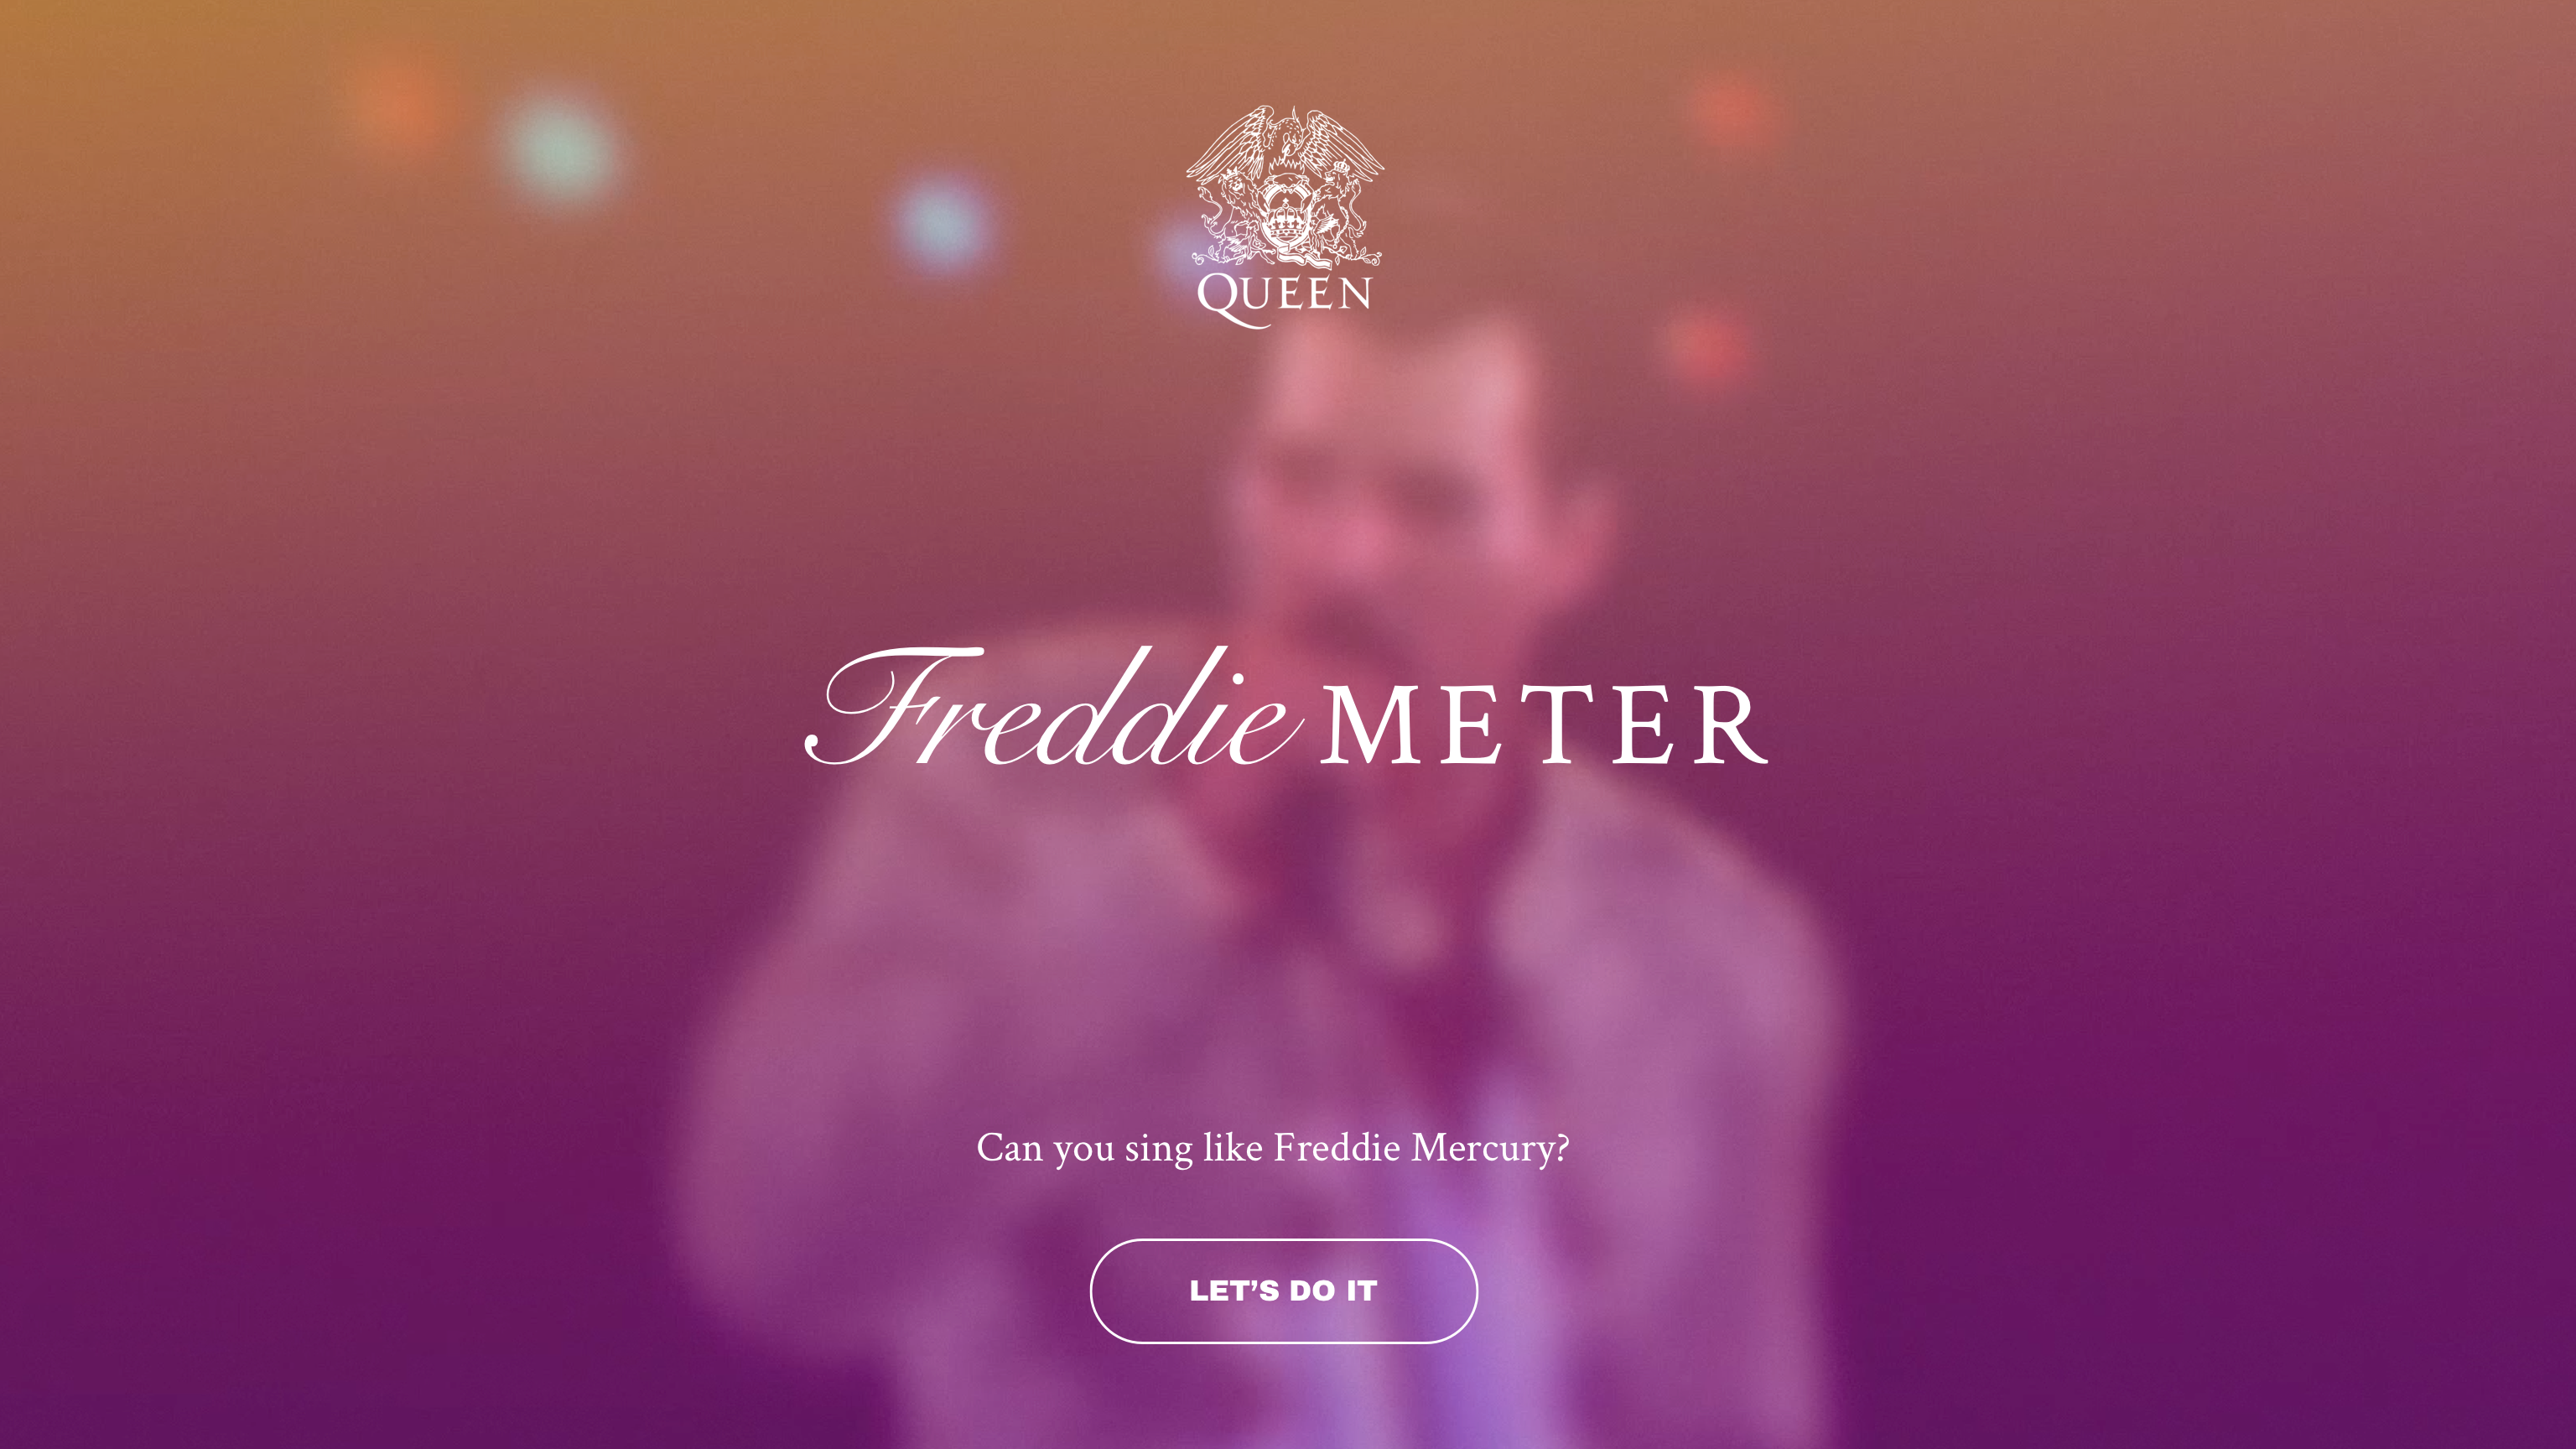 Can you sing like Freddie?